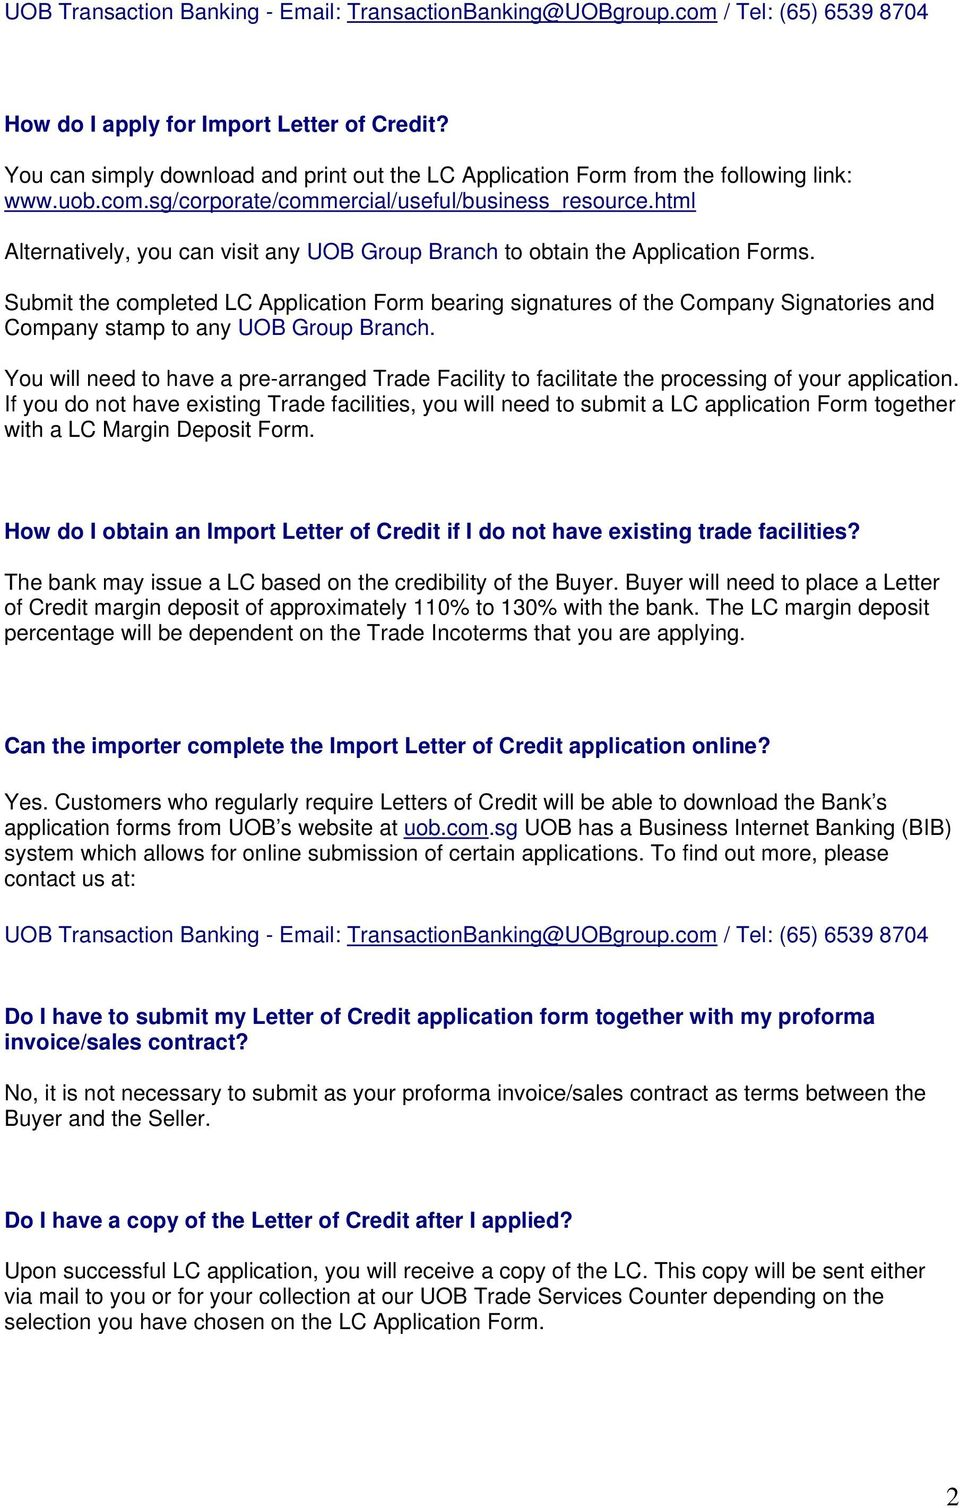 Submit the completed LC Application Form bearing signatures of the Company Signatories and Company stamp to any UOB Group Branch.